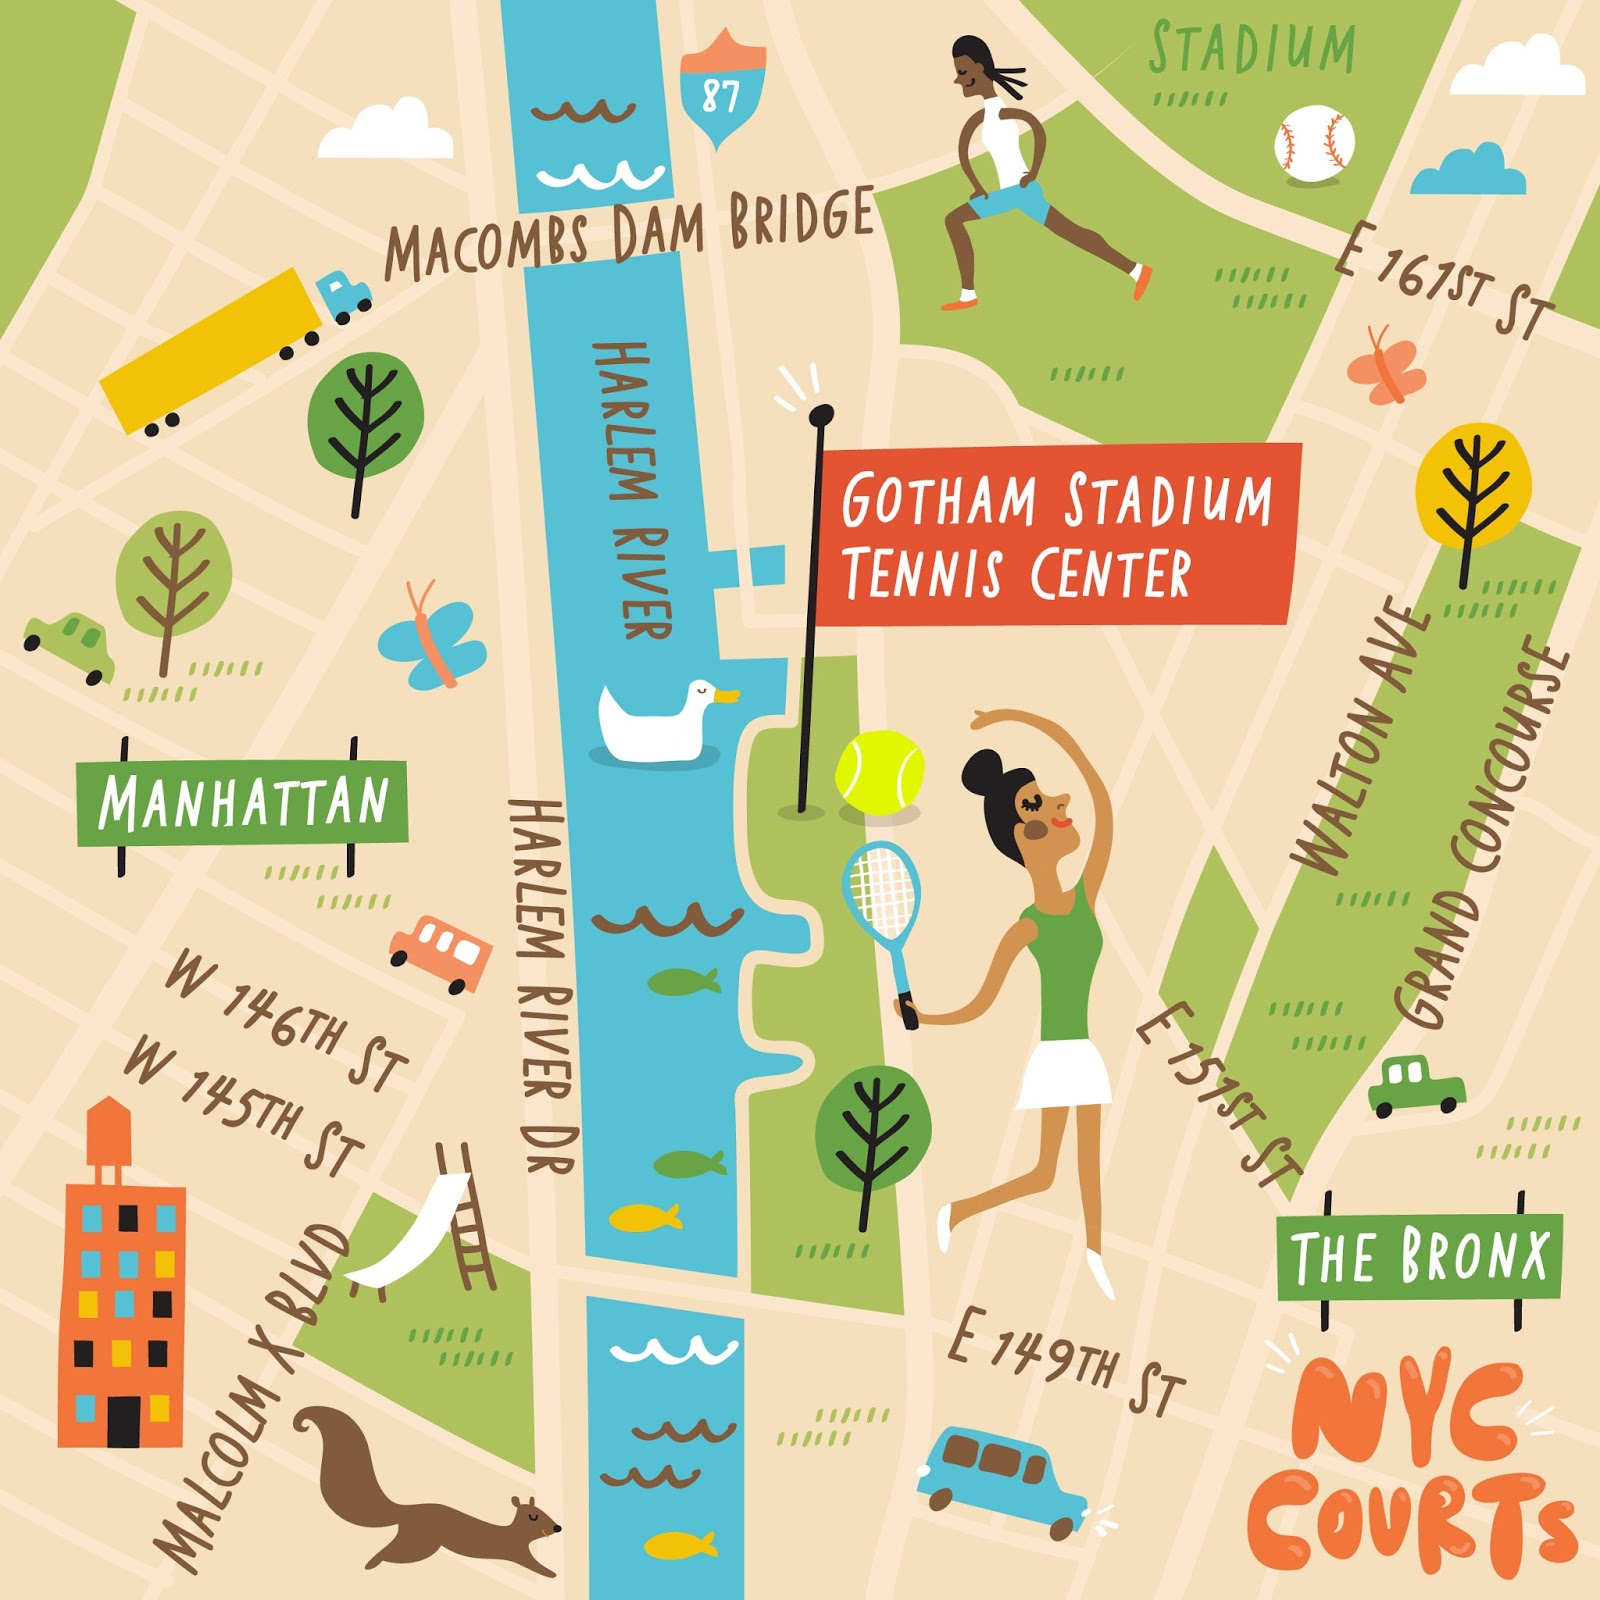 I Draw Maps Illustrated Map Series Of Nyc Tennis Courts For Ibm - Us-open-court-map